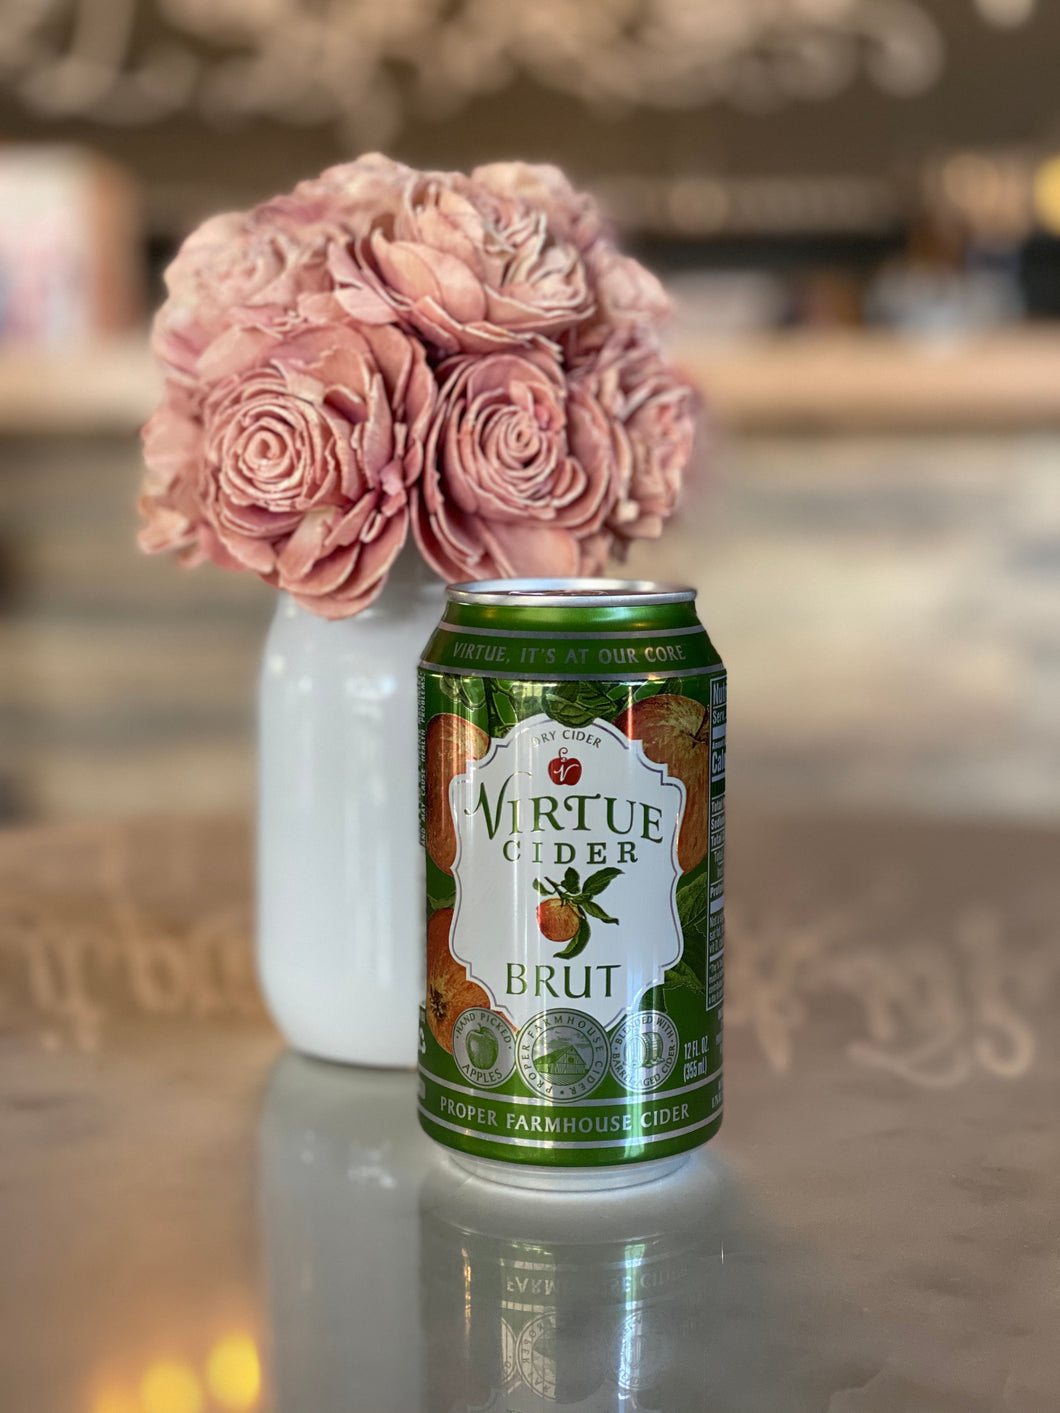 Virtue Cider Brut